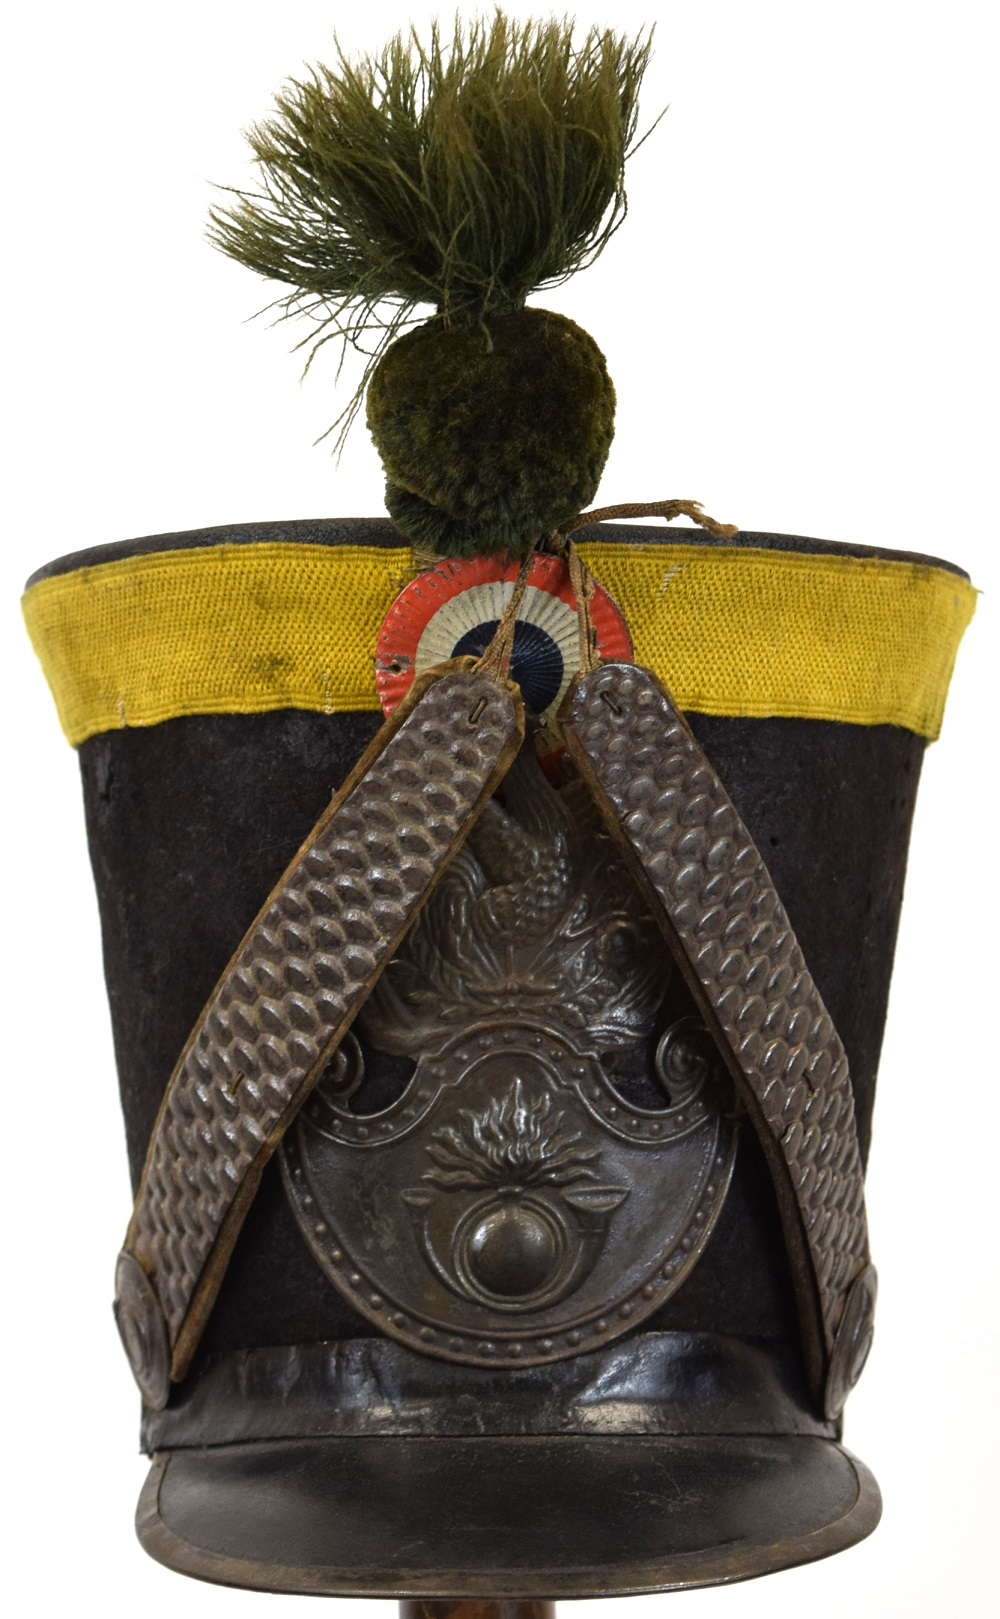 French 19th C. Military Officer's Shako Hat (Helmet) with Silver mounts